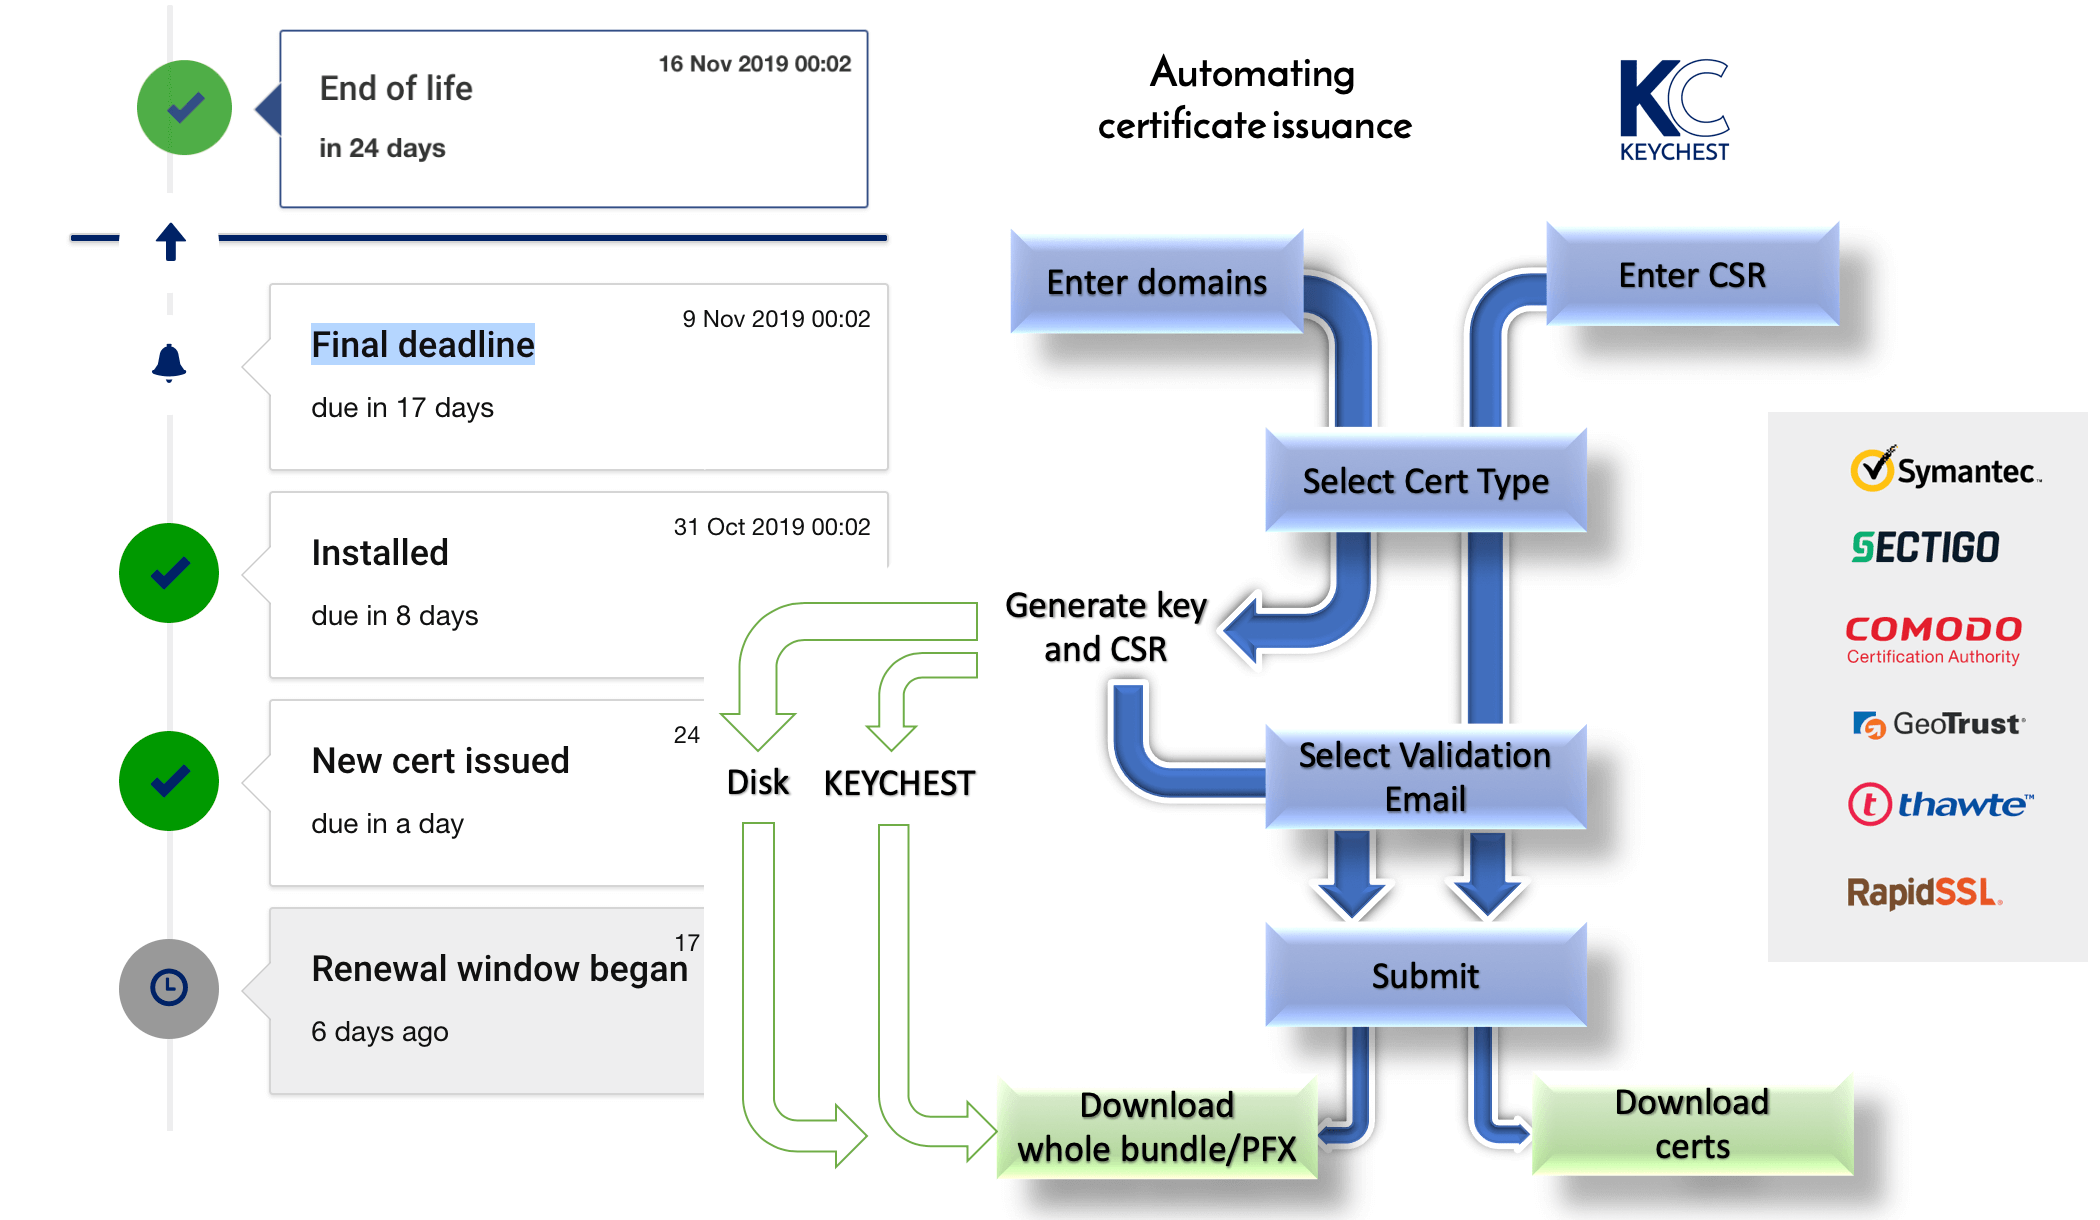 KeyChest renewal management and monitoring - https://keychest.net